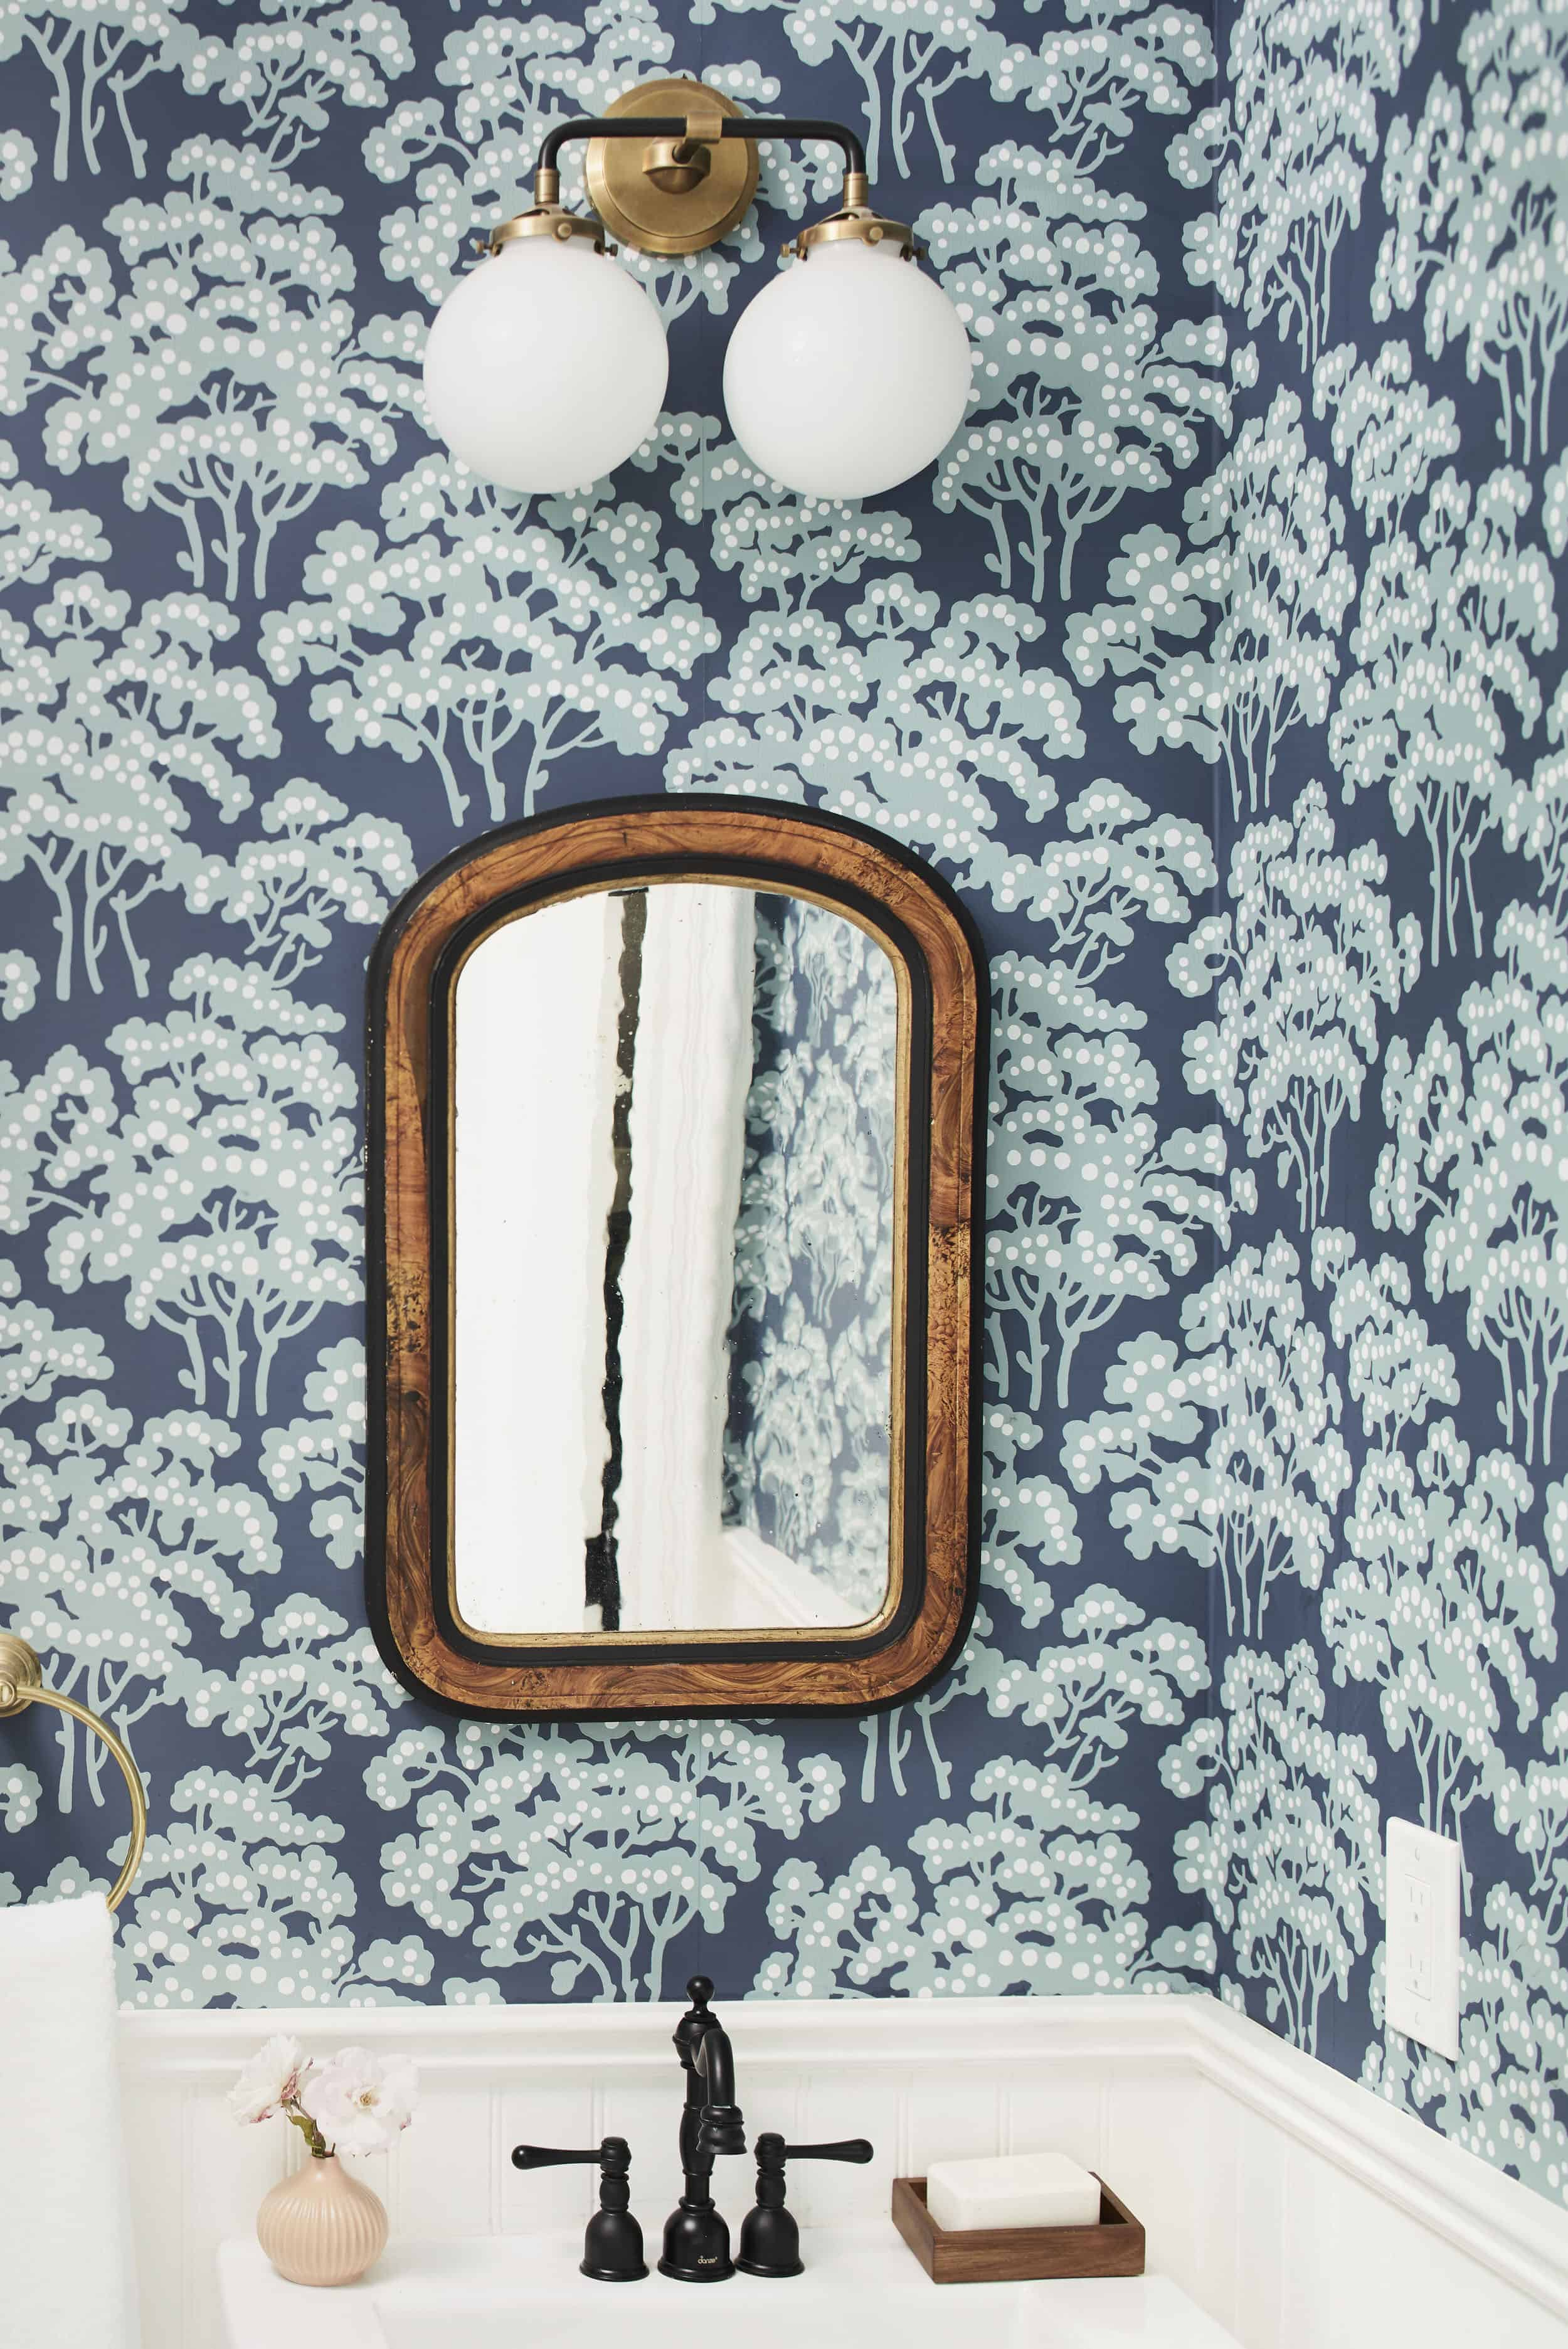 Hand Screened Wallpaper Vintage Mirror Black Faucet Emily Henderson